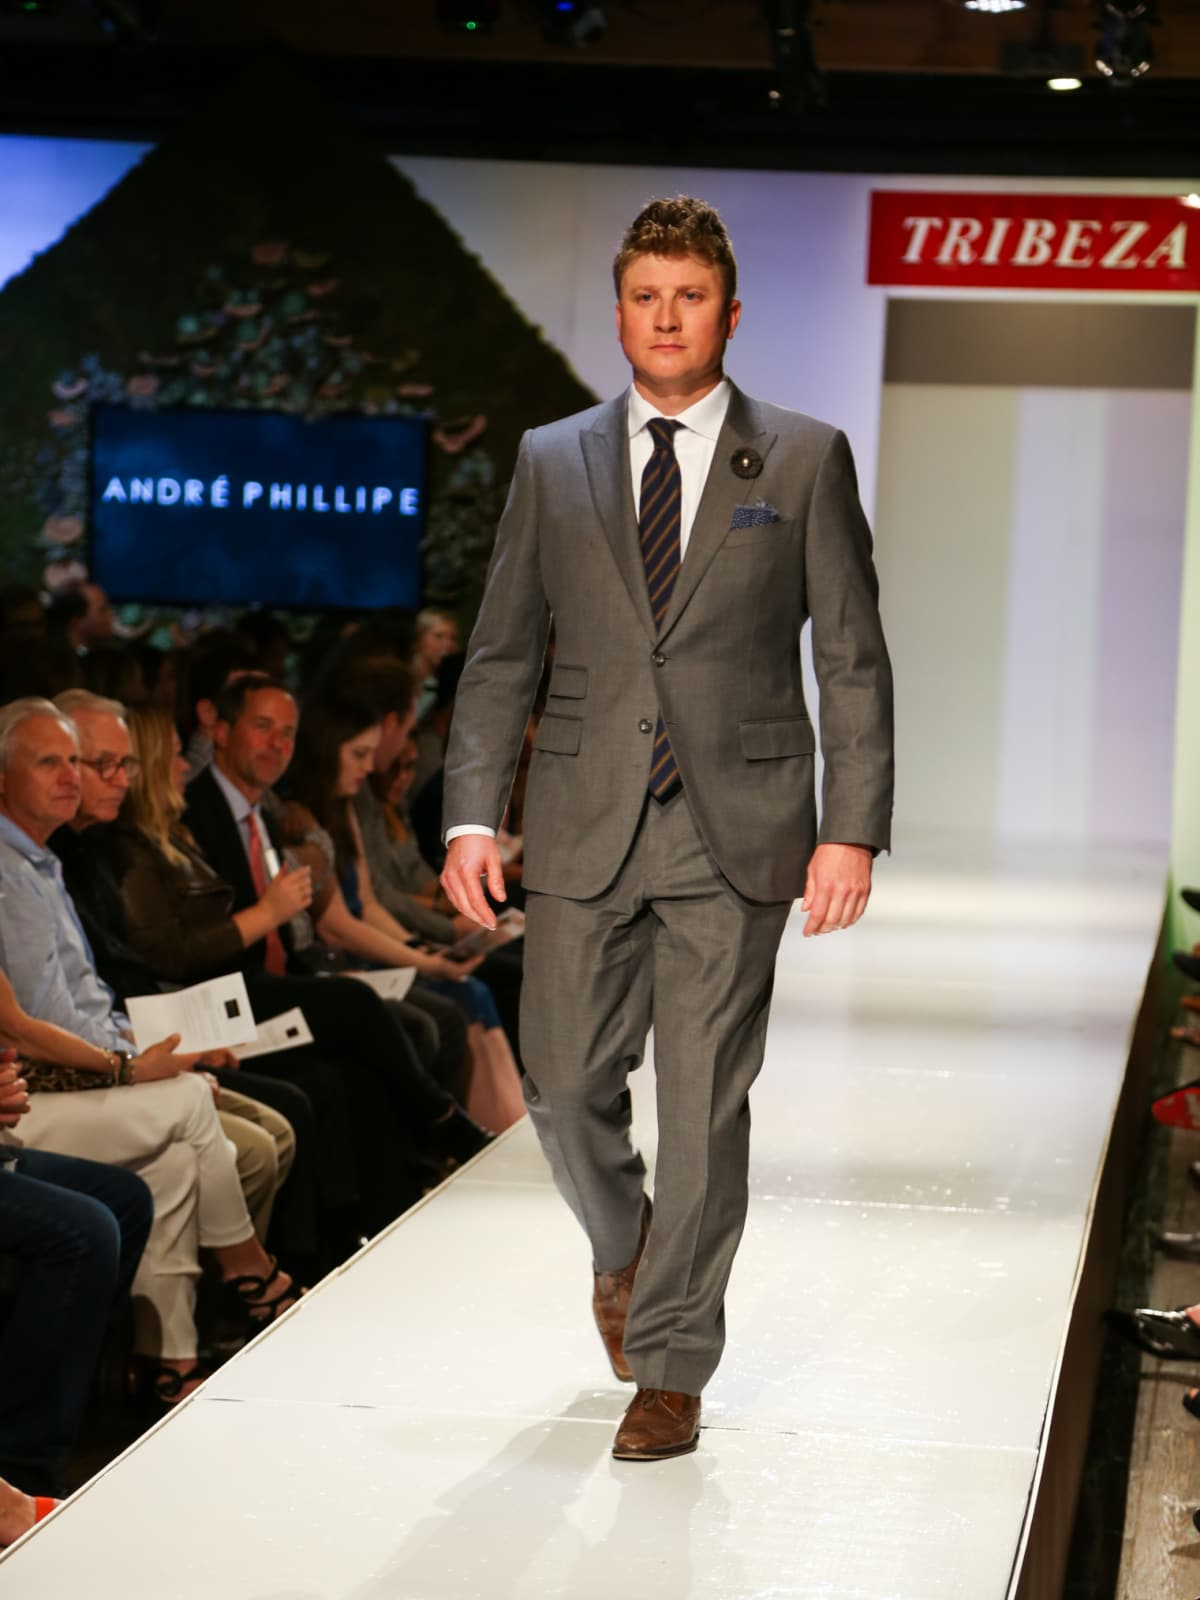 Tribeza Fashion Show 2015 at Brazos Hall Andre Phillipe